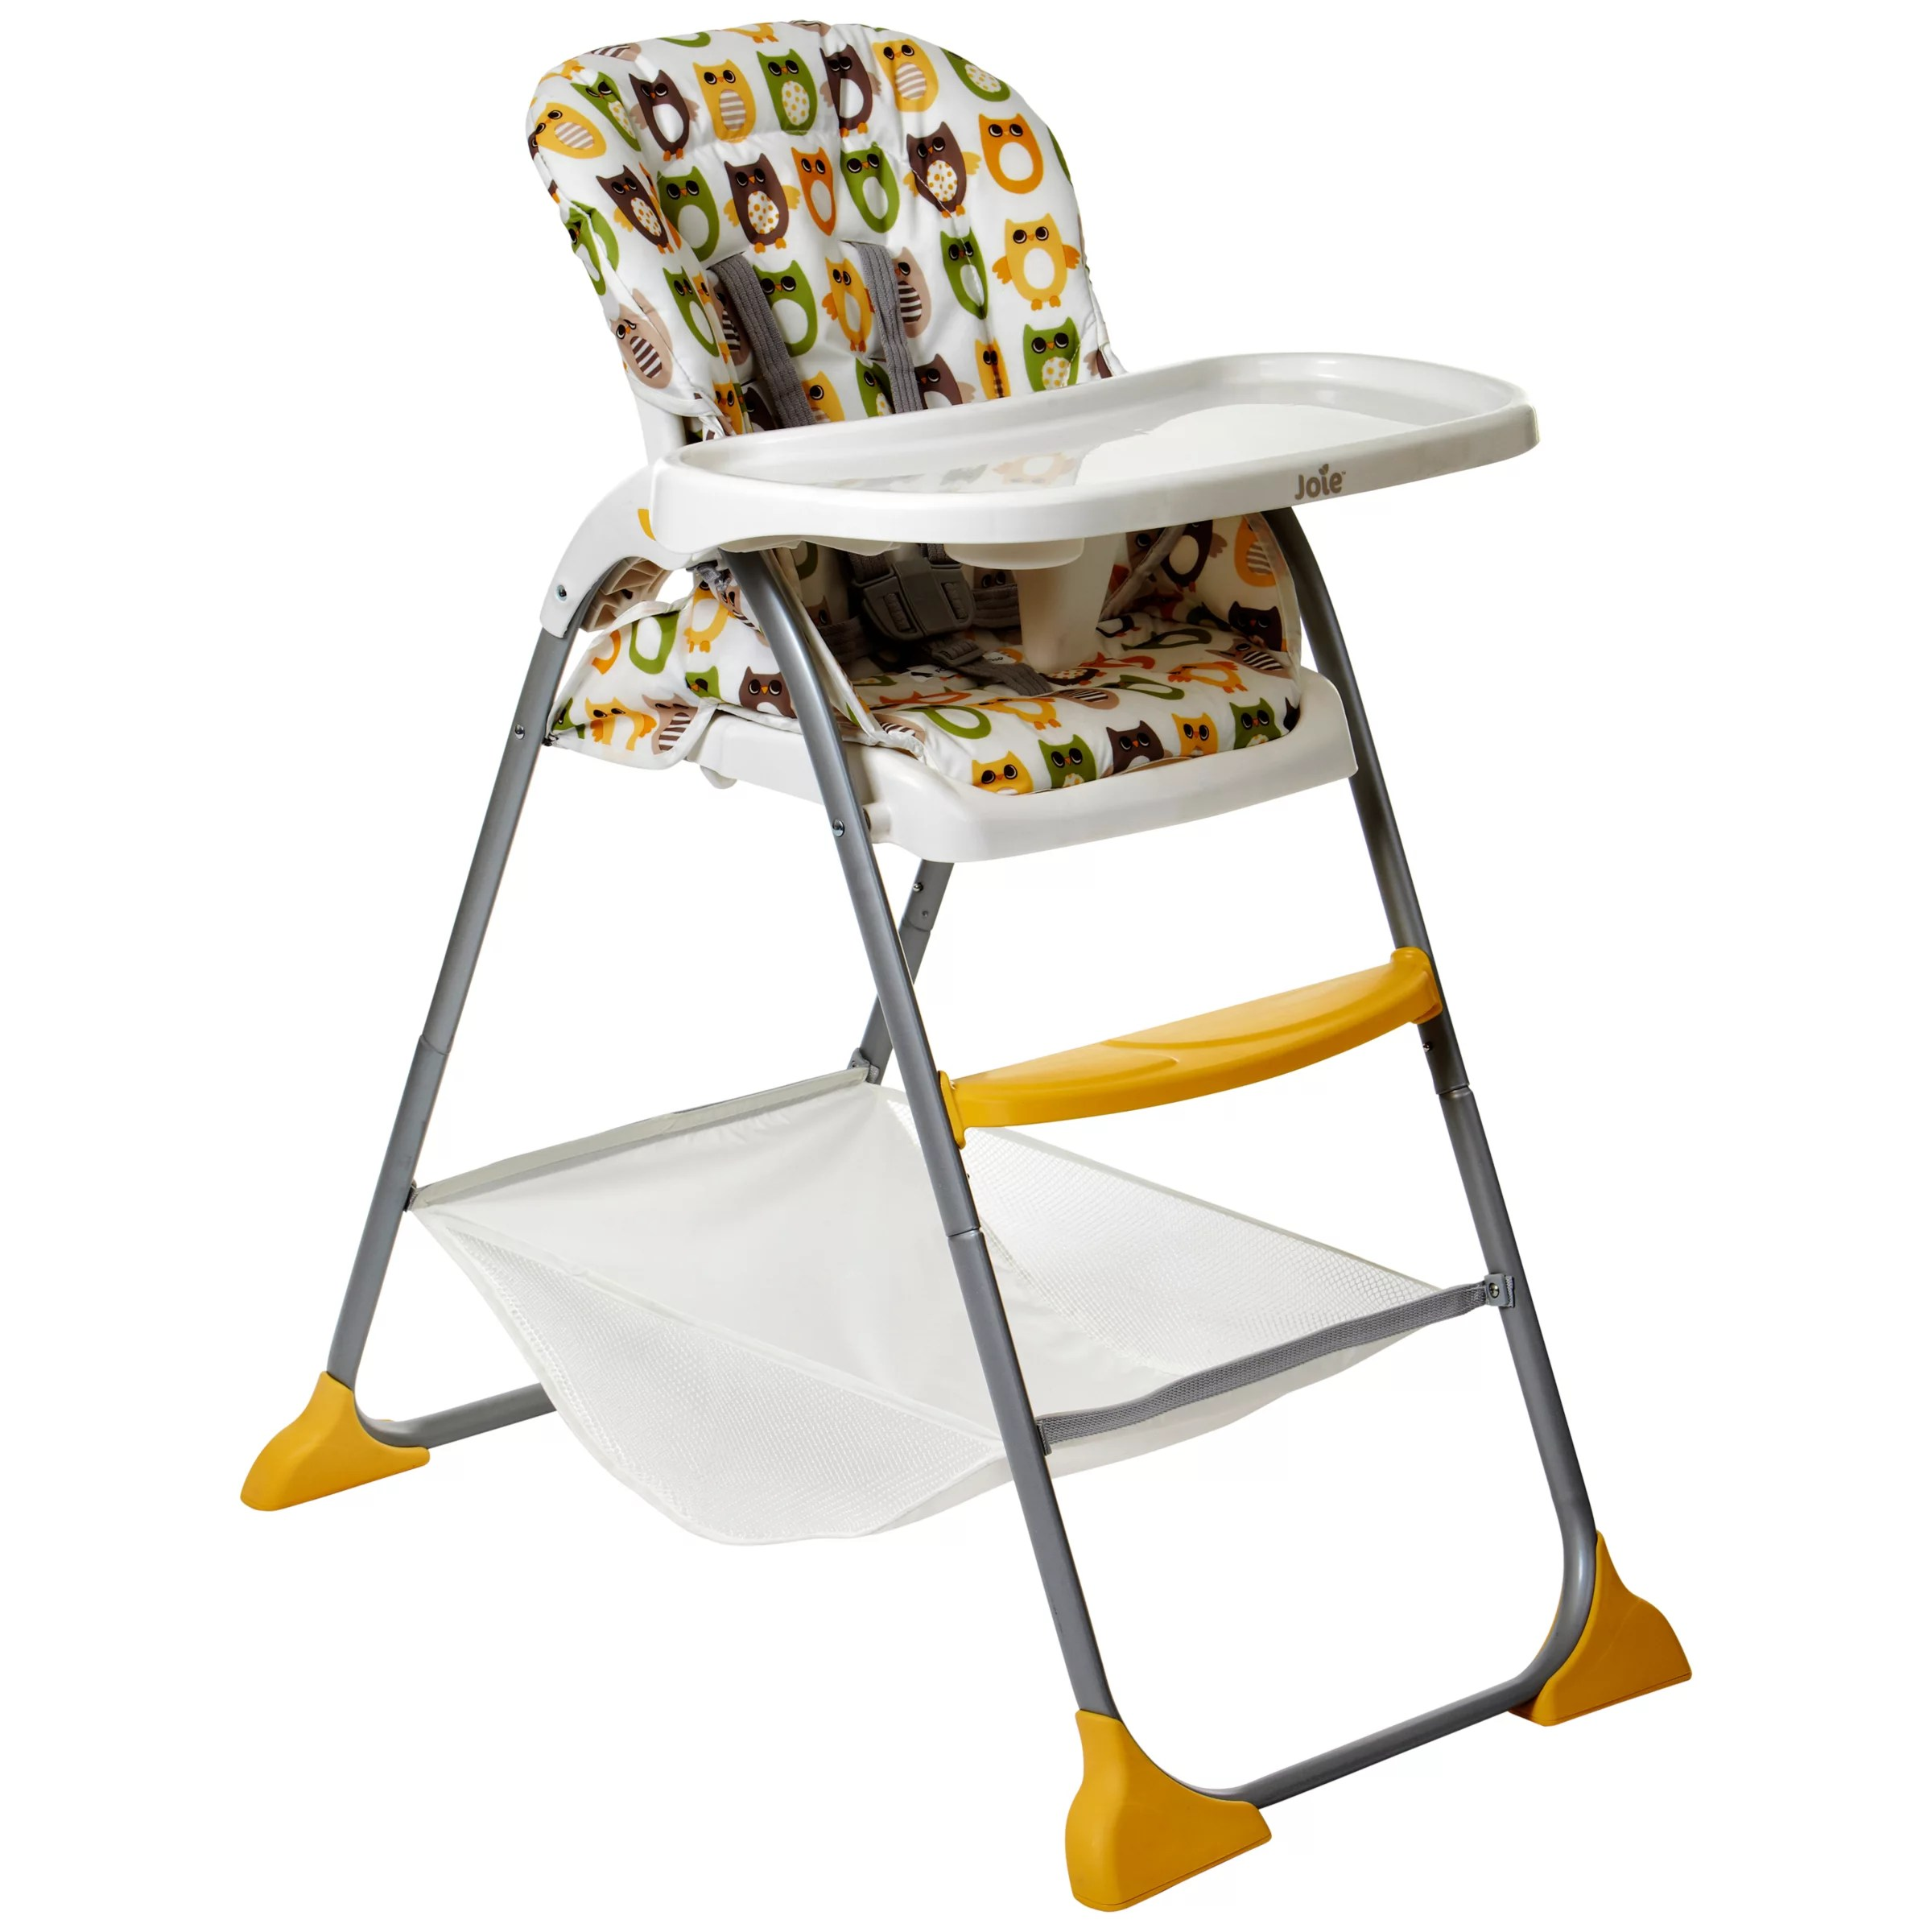 Joie Baby High Chair John Lewis Joie Baby Mimzy Snacker Highchair Owl At John Lewis